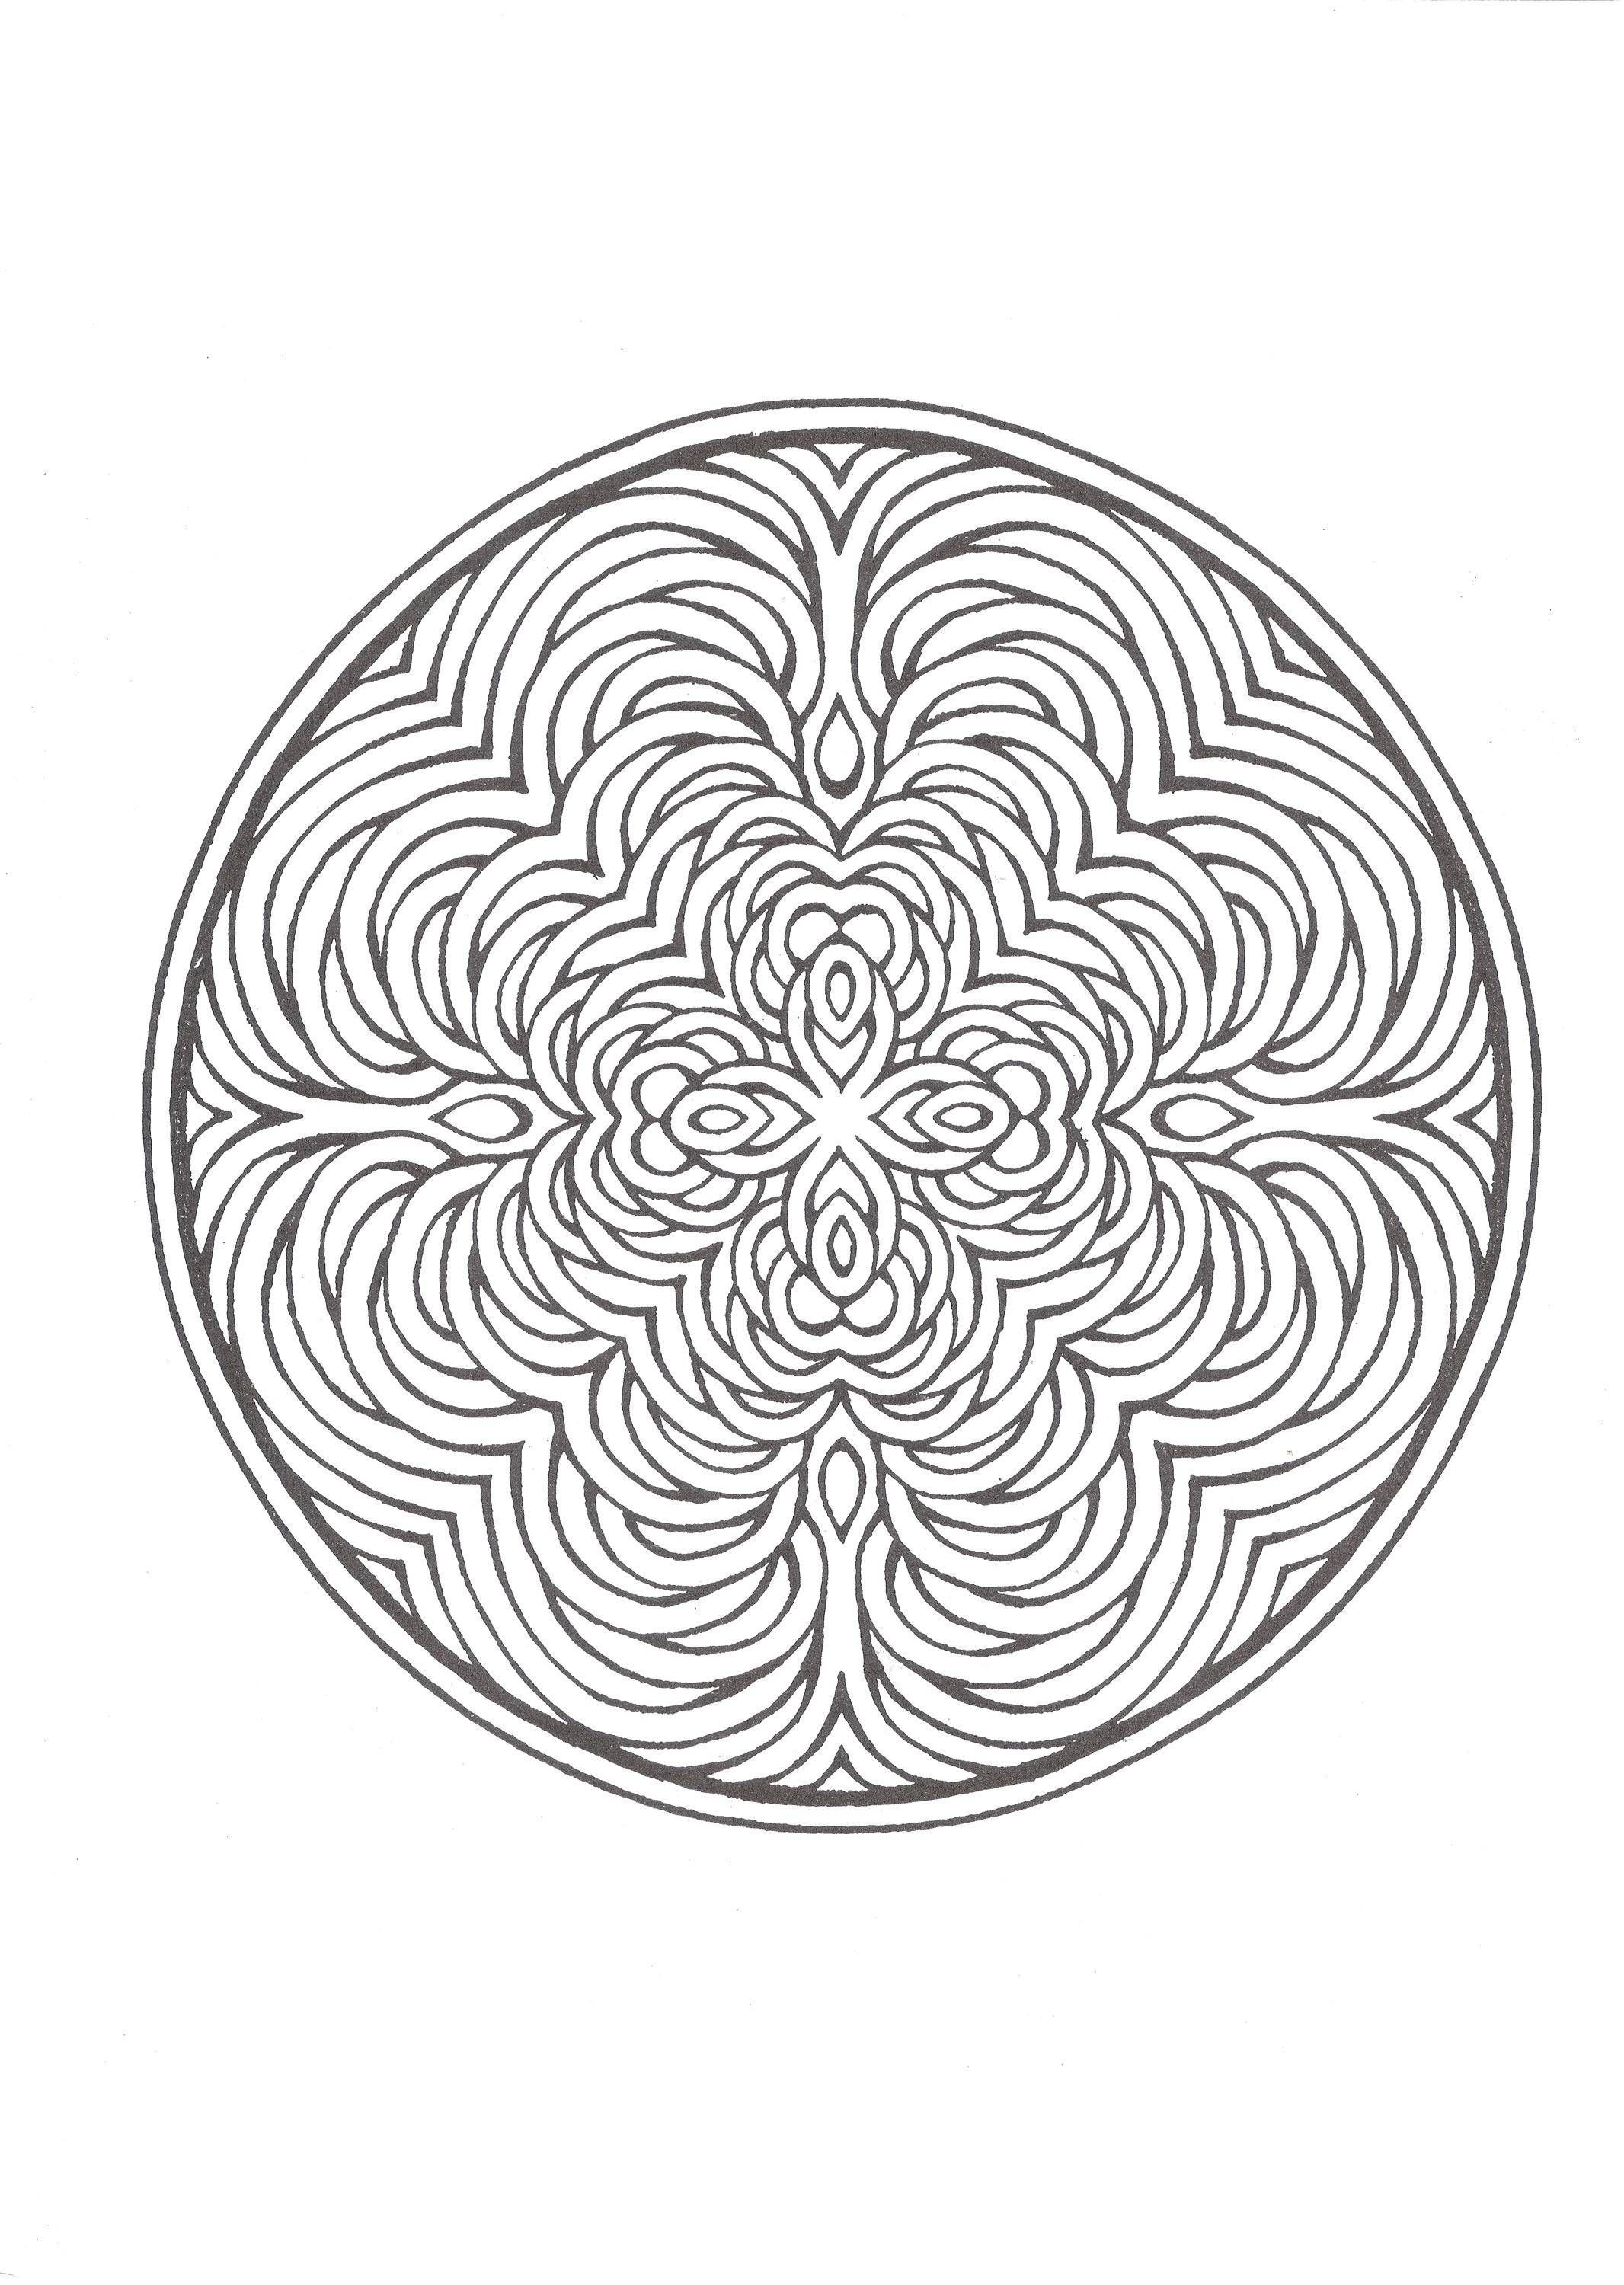 Color With Reddit R Colorwithreddit Mandala Coloring Books Mandala Coloring Mandala Coloring Pages